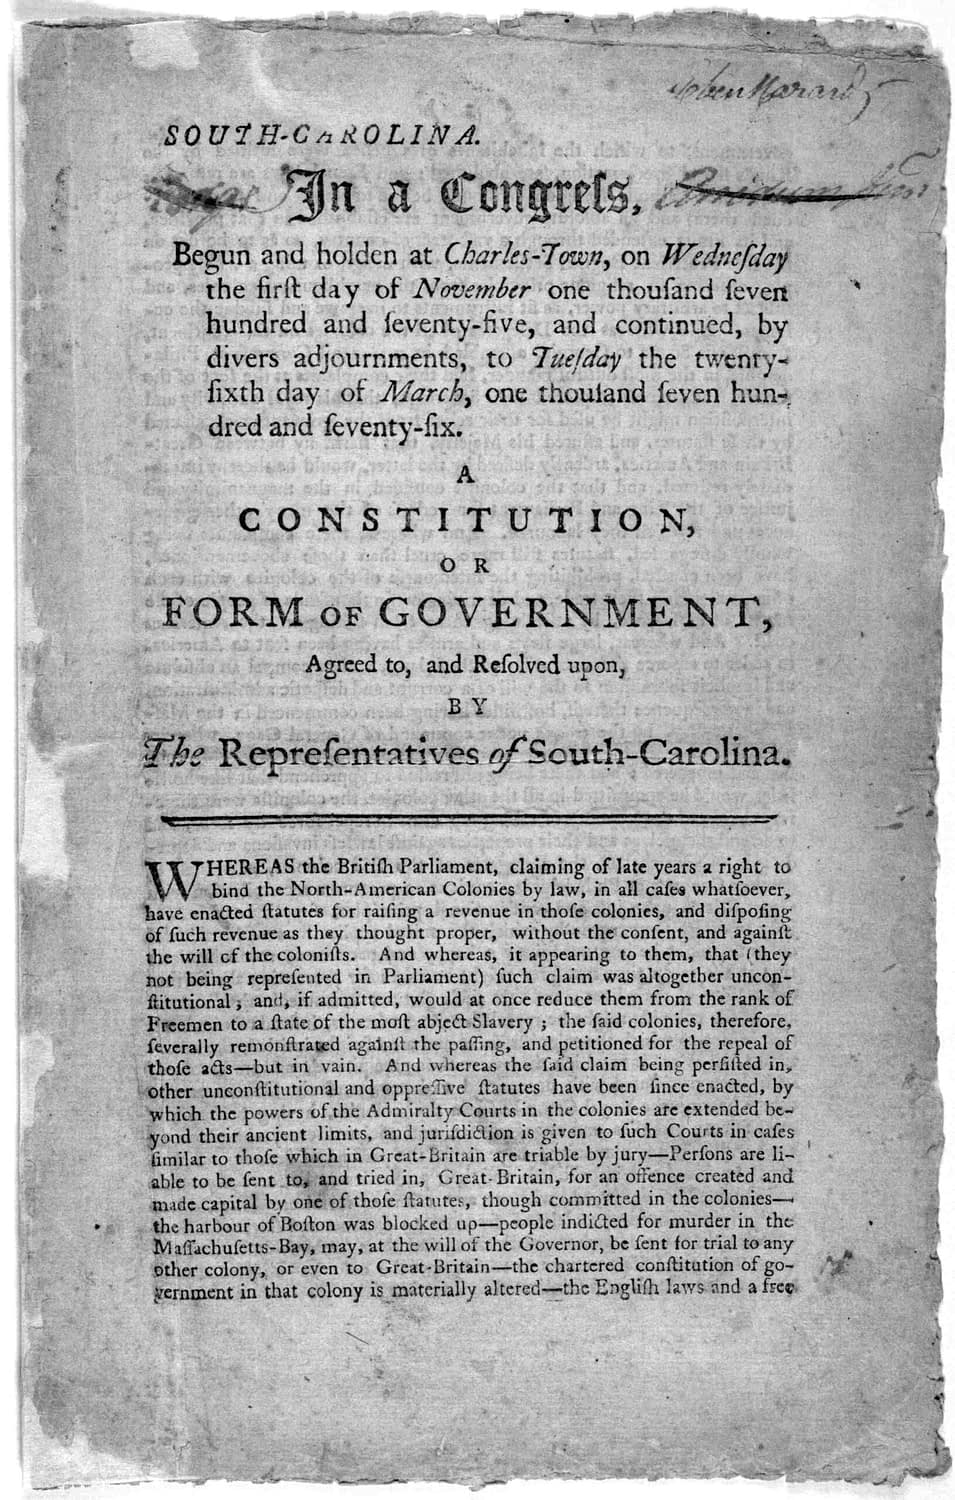 Constitution of South Carolina: March 26, 1776